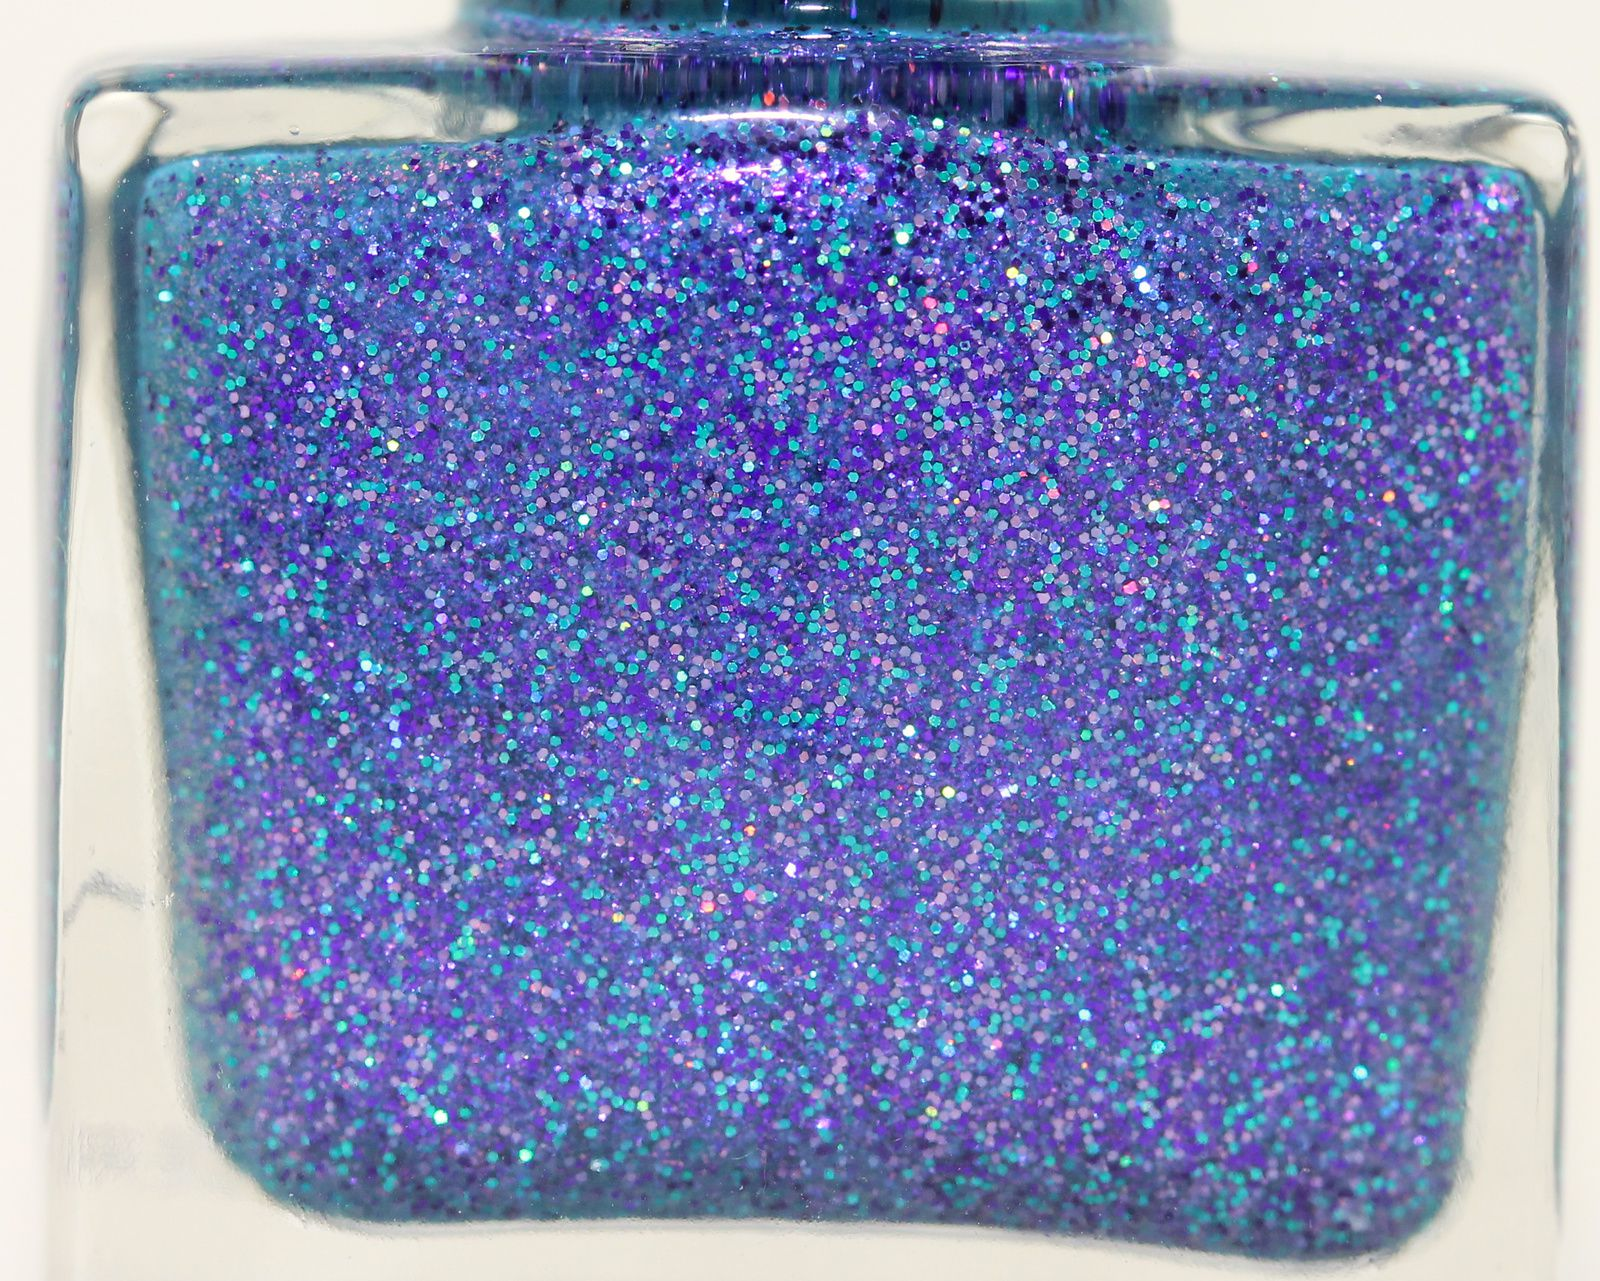 Femme Fatale Cosmetics - Twinkle Twinkle (2 coats, no top coat)